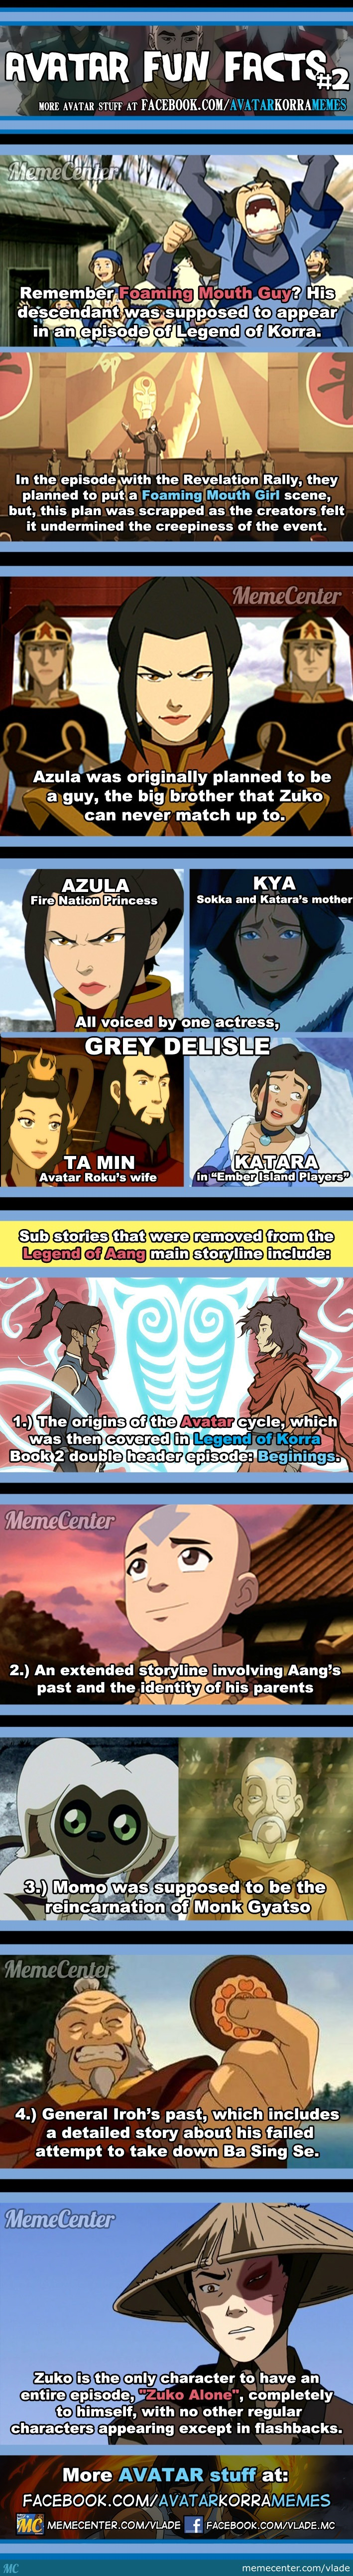 Avatar Fun Facts #2